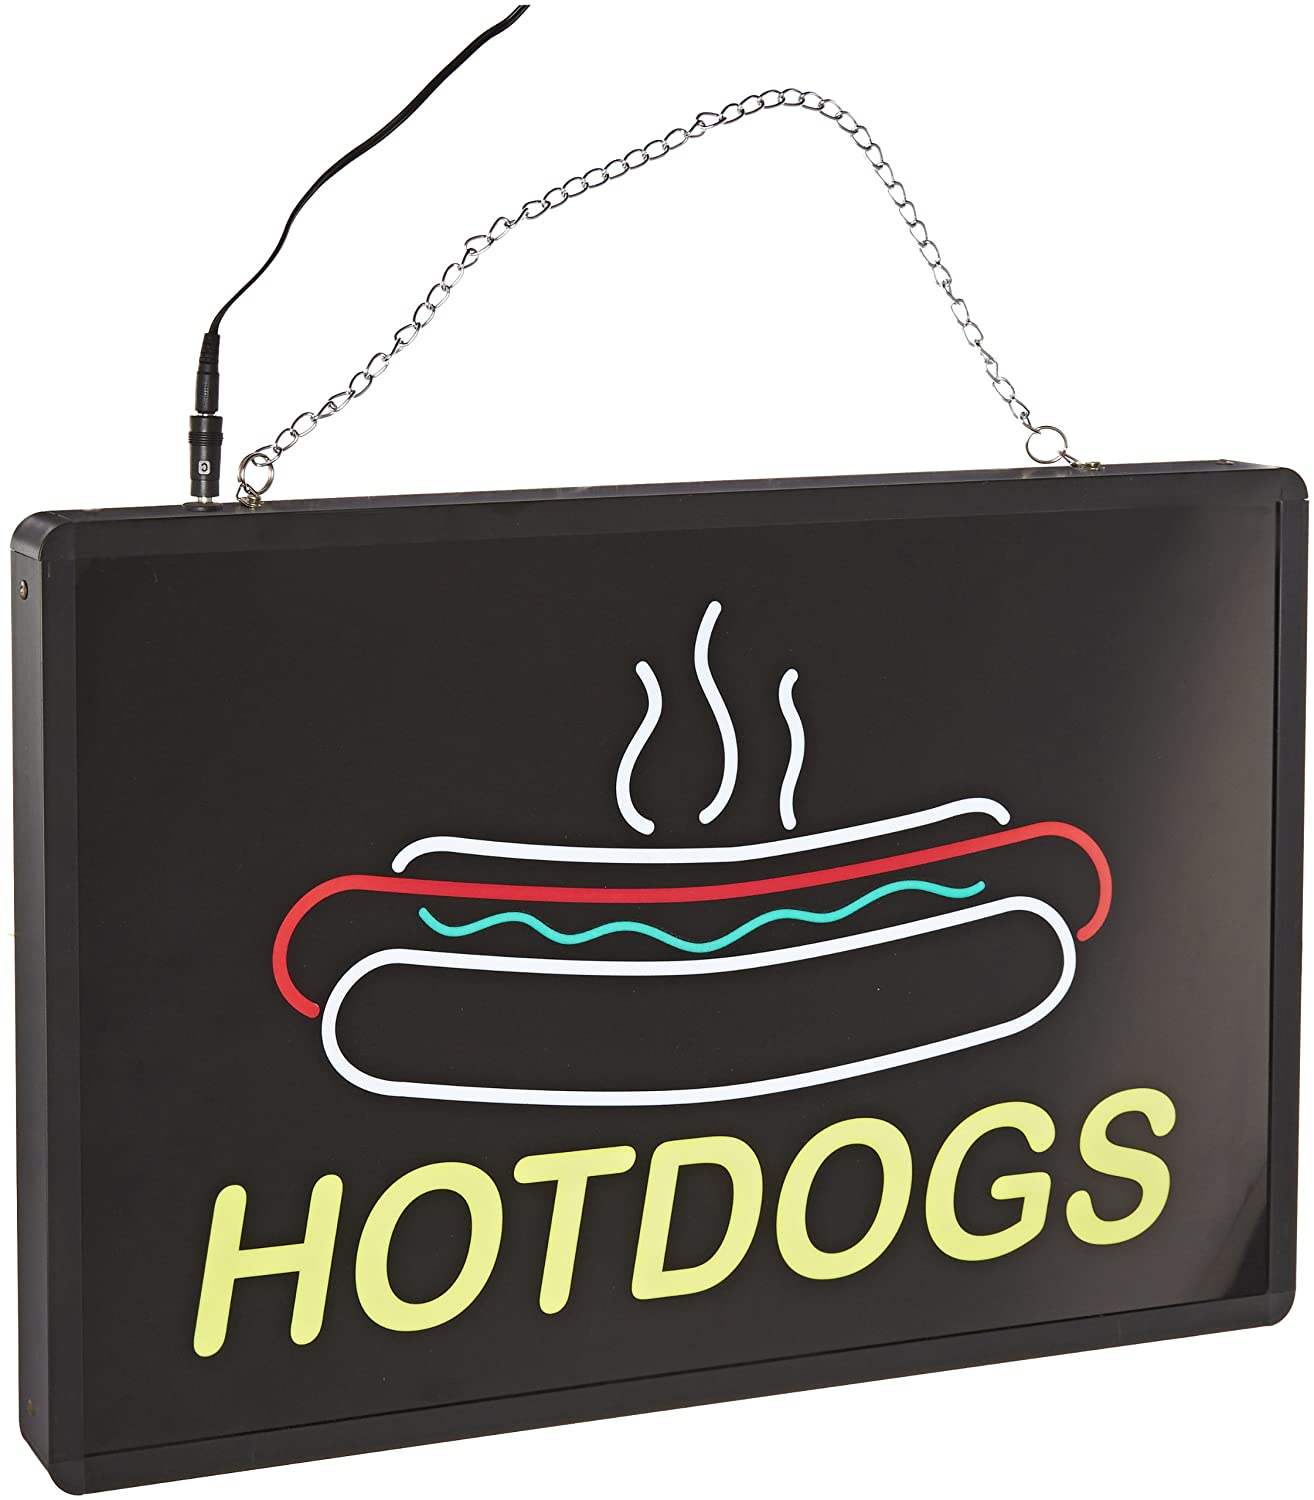 Benchmark 92002 Ultra-Bright Max 87% OFF Sign Hotdogs Daily bargain sale Wid 13